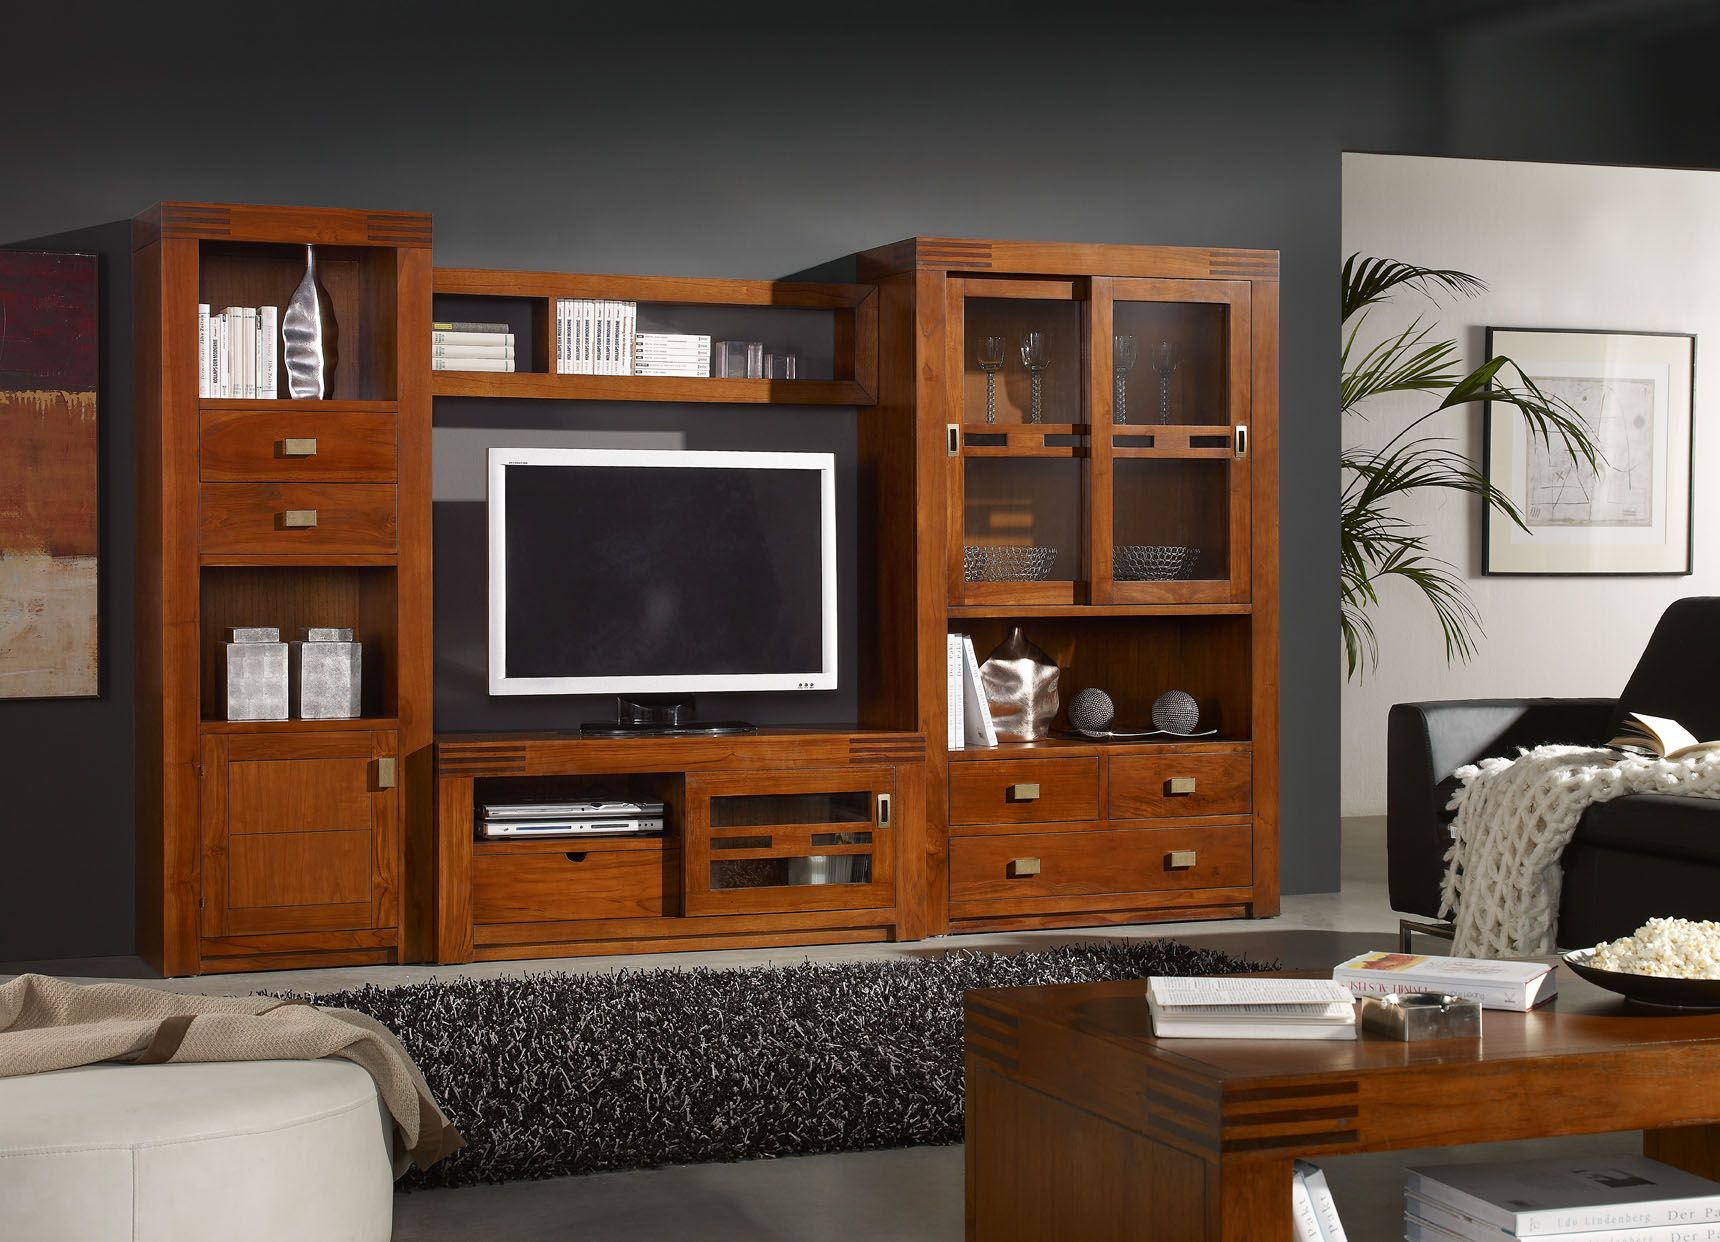 Modular colonial serie wood muebles coloniales for Muebles coloniales